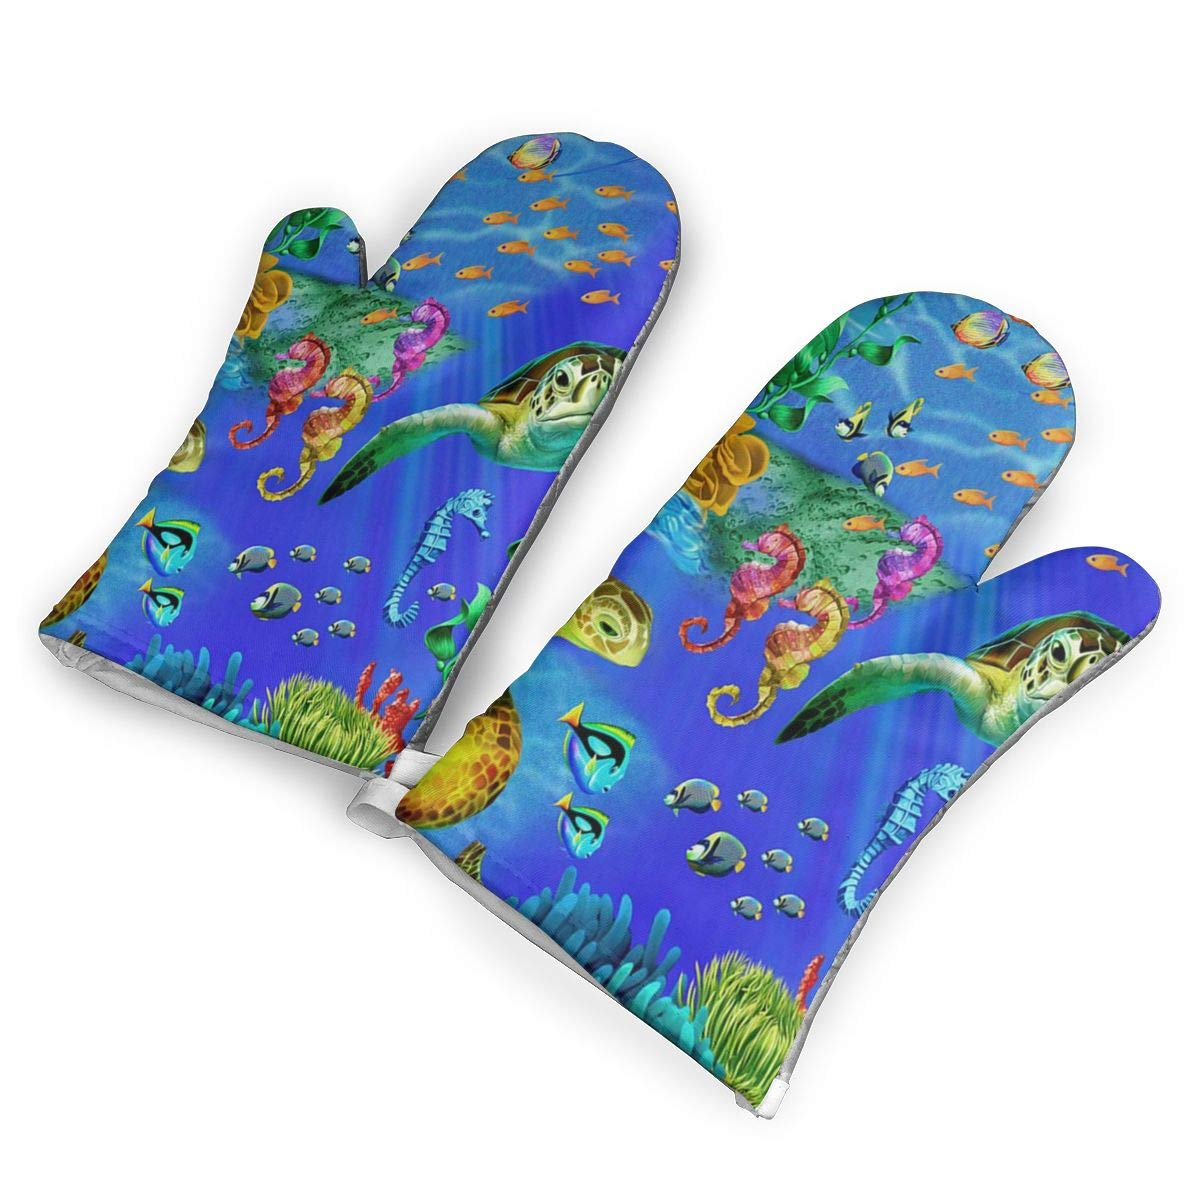 Feederm Sea Life Sea Turtles Oven Mitts,Professional Heat Resistant Microwave Oven Insulation Thickening Gloves Baking Pot Mittens Soft Inner Lining Kitchen Cooking